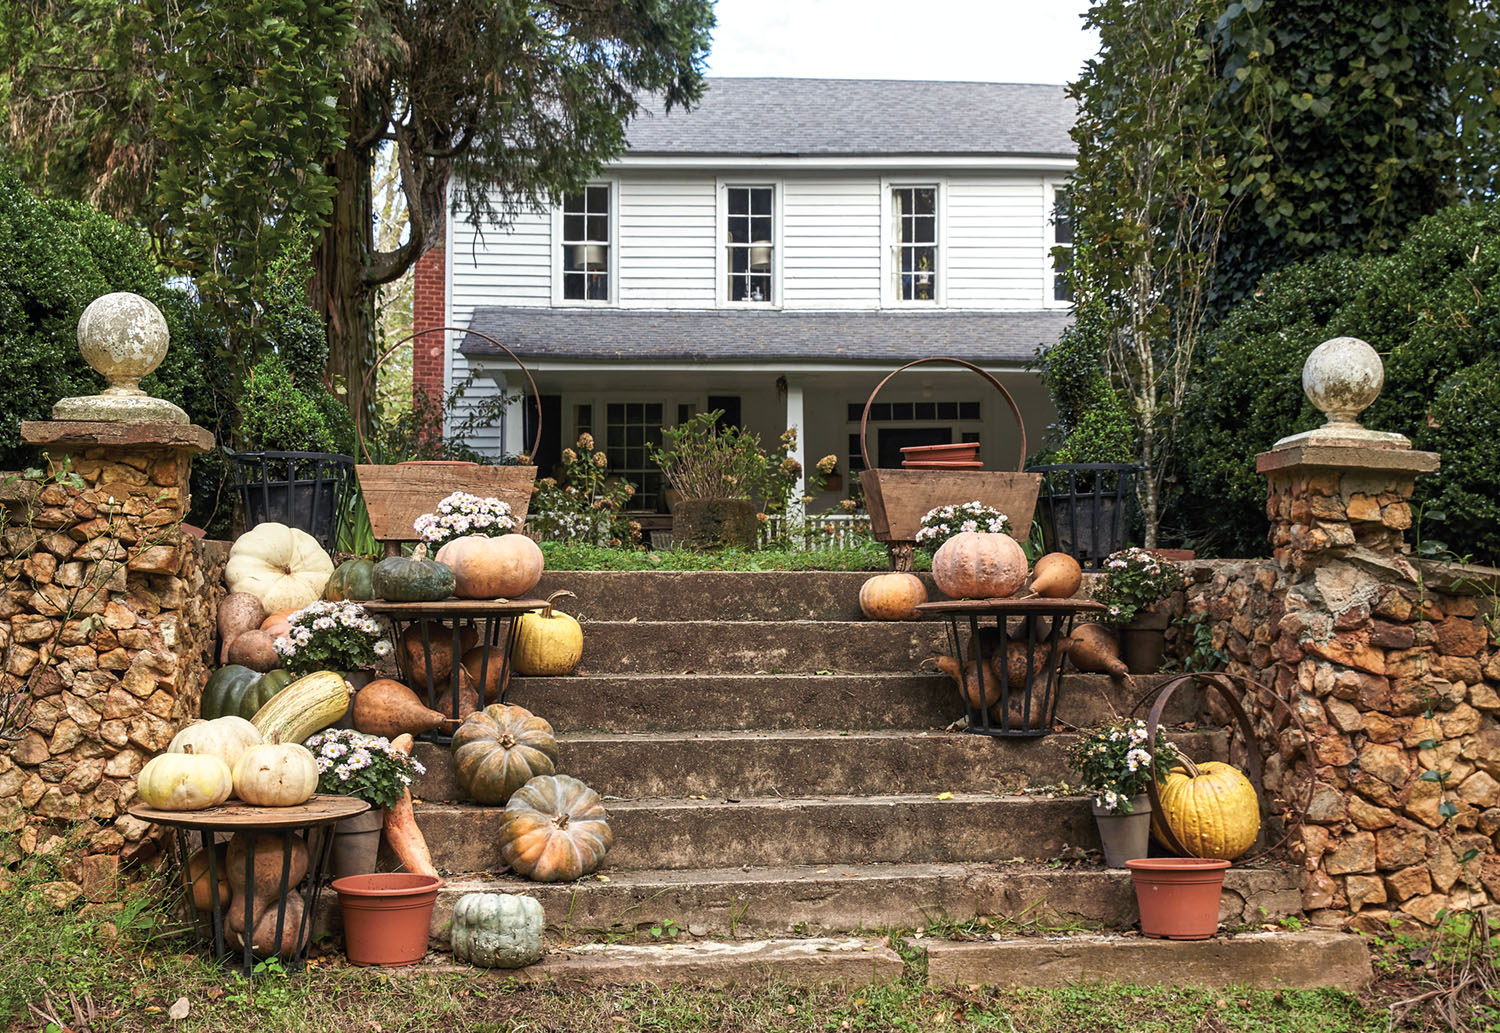 A display of pumpkins and other squash in cream, pale orange, and yellow decorate steps flanked by stone pillars. In the background is Keith Robinson's two-story white farmhouse